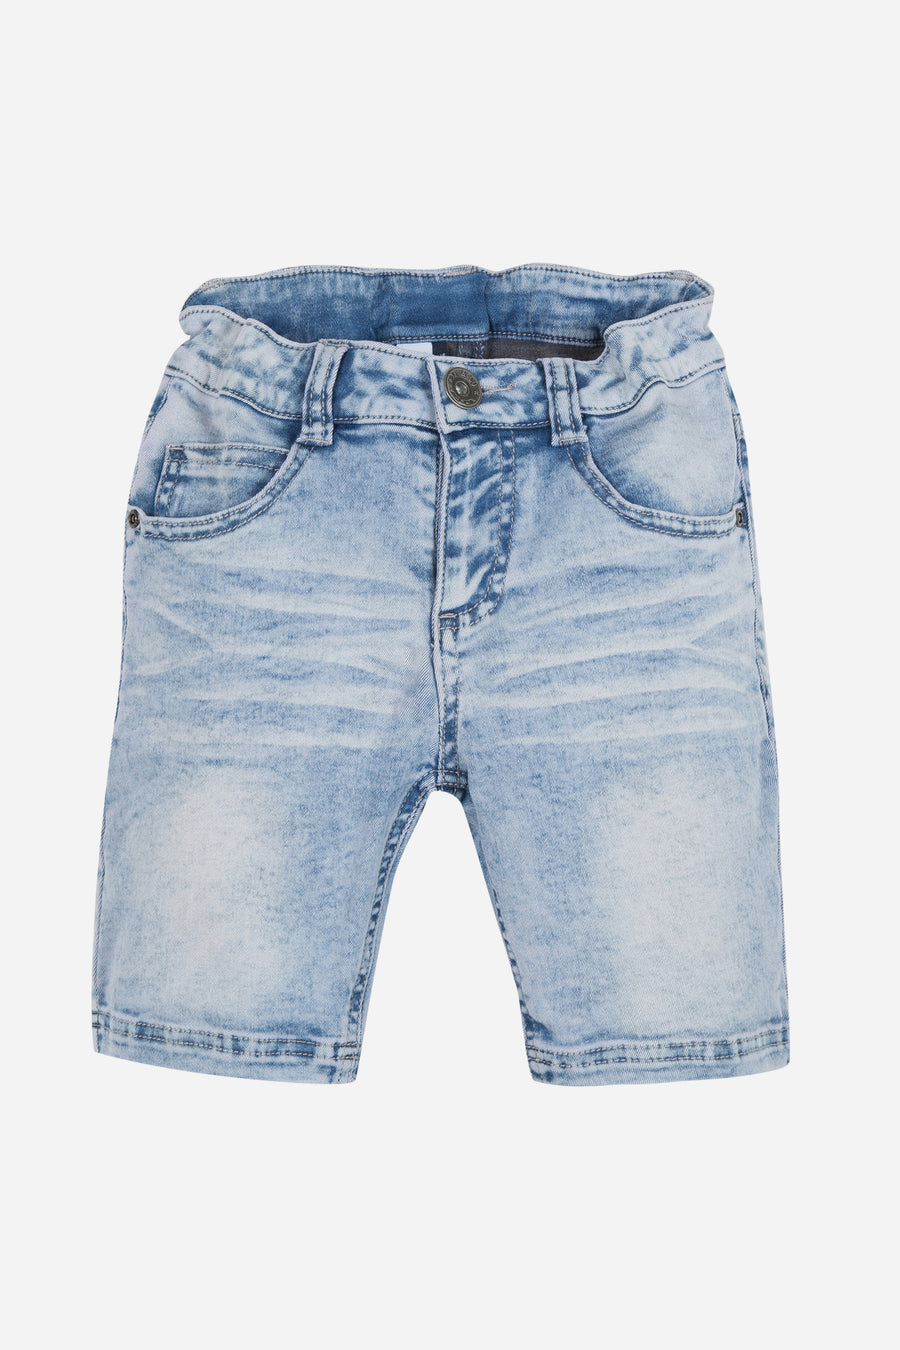 3pommes Denim Shorts